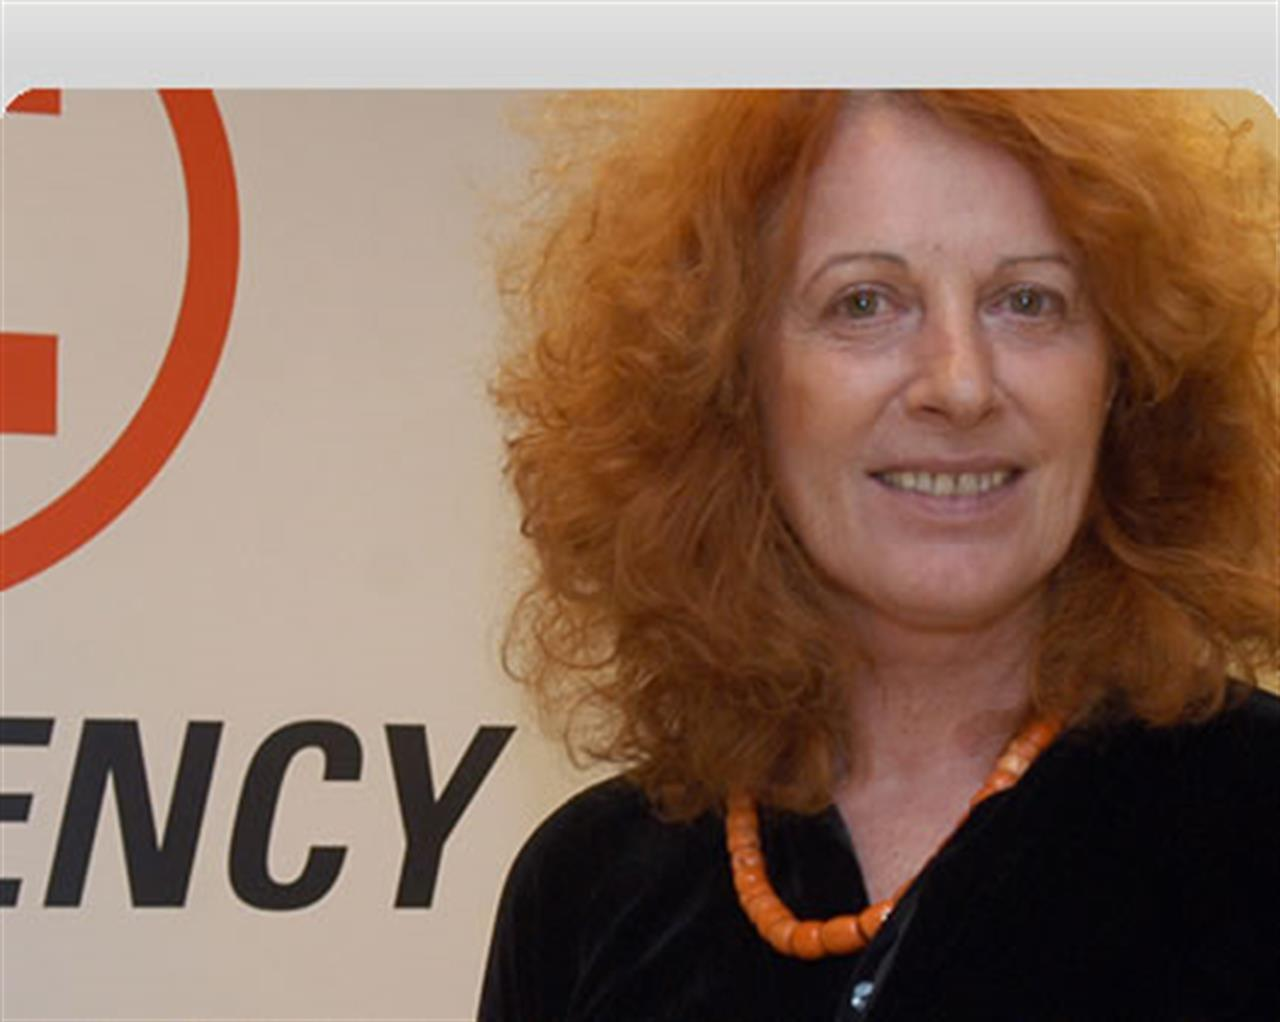 Ten Years Without Teresa Sarti. She Brought Excellence In Healthcare To Africa With Emergency